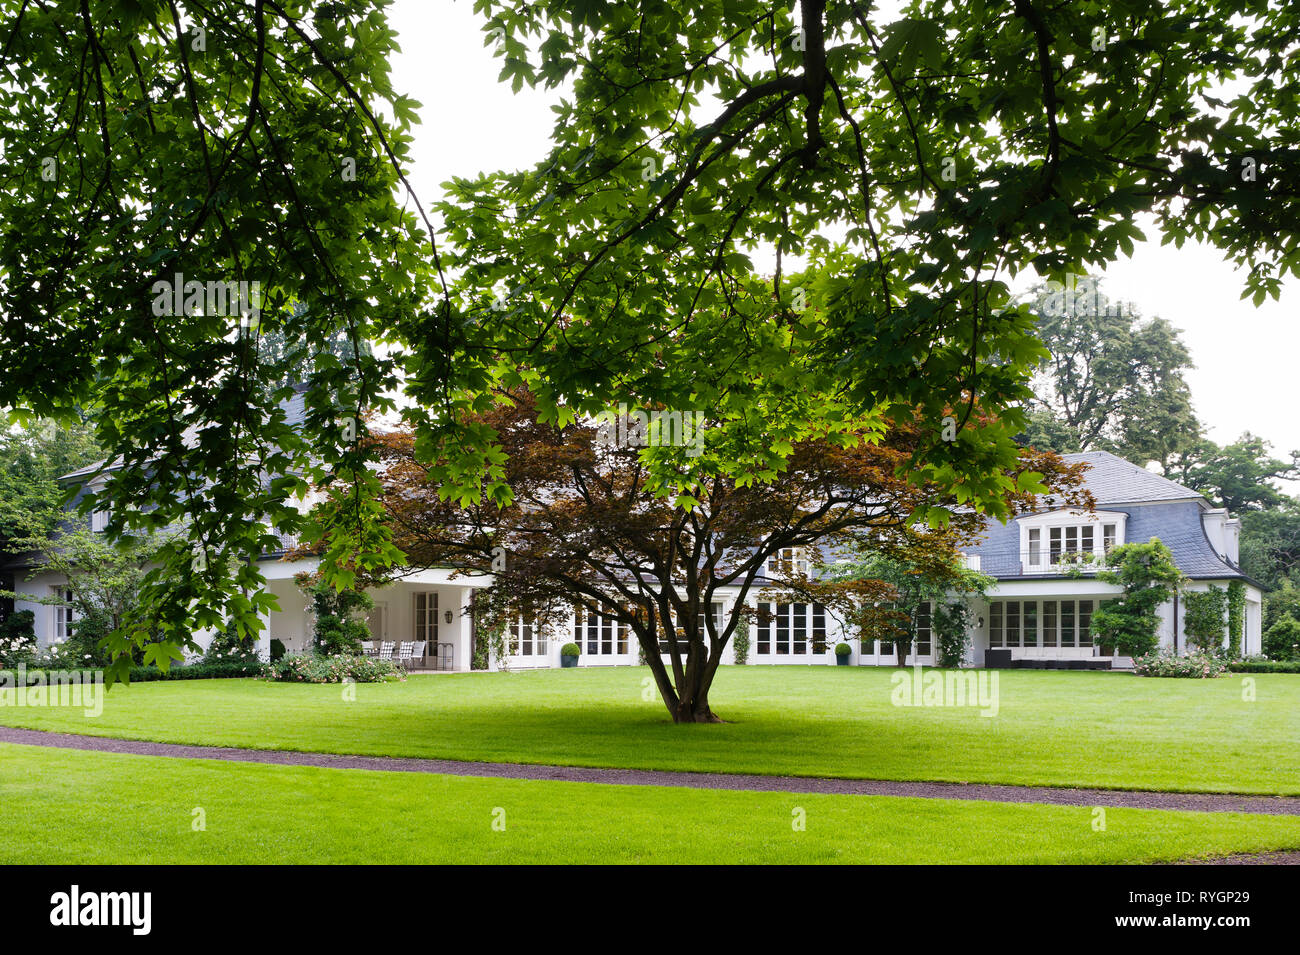 Tree on lawn by house - Stock Image